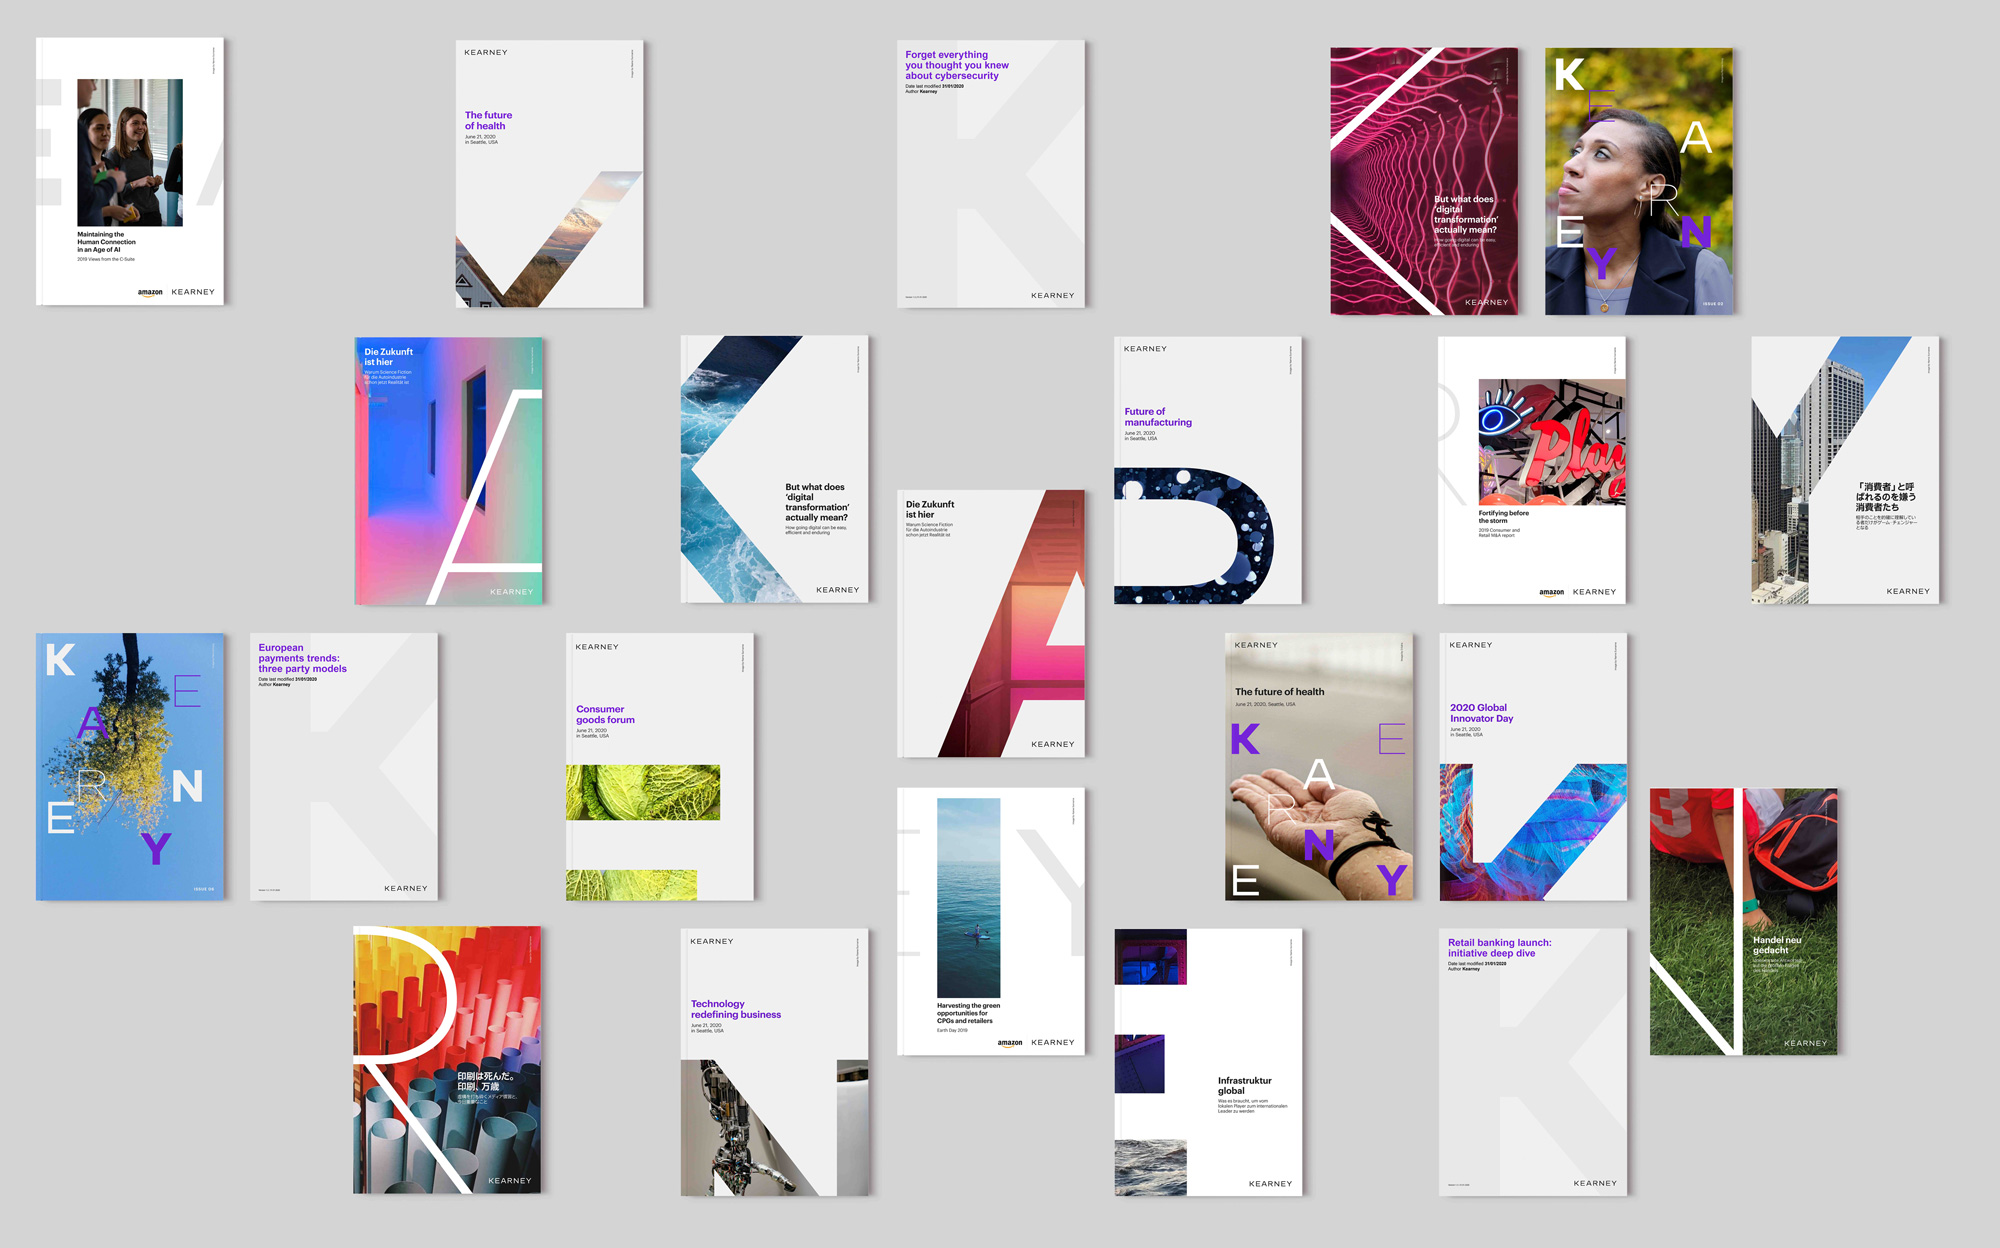 New Logo and Identity for Kearney by Siegel+Gale